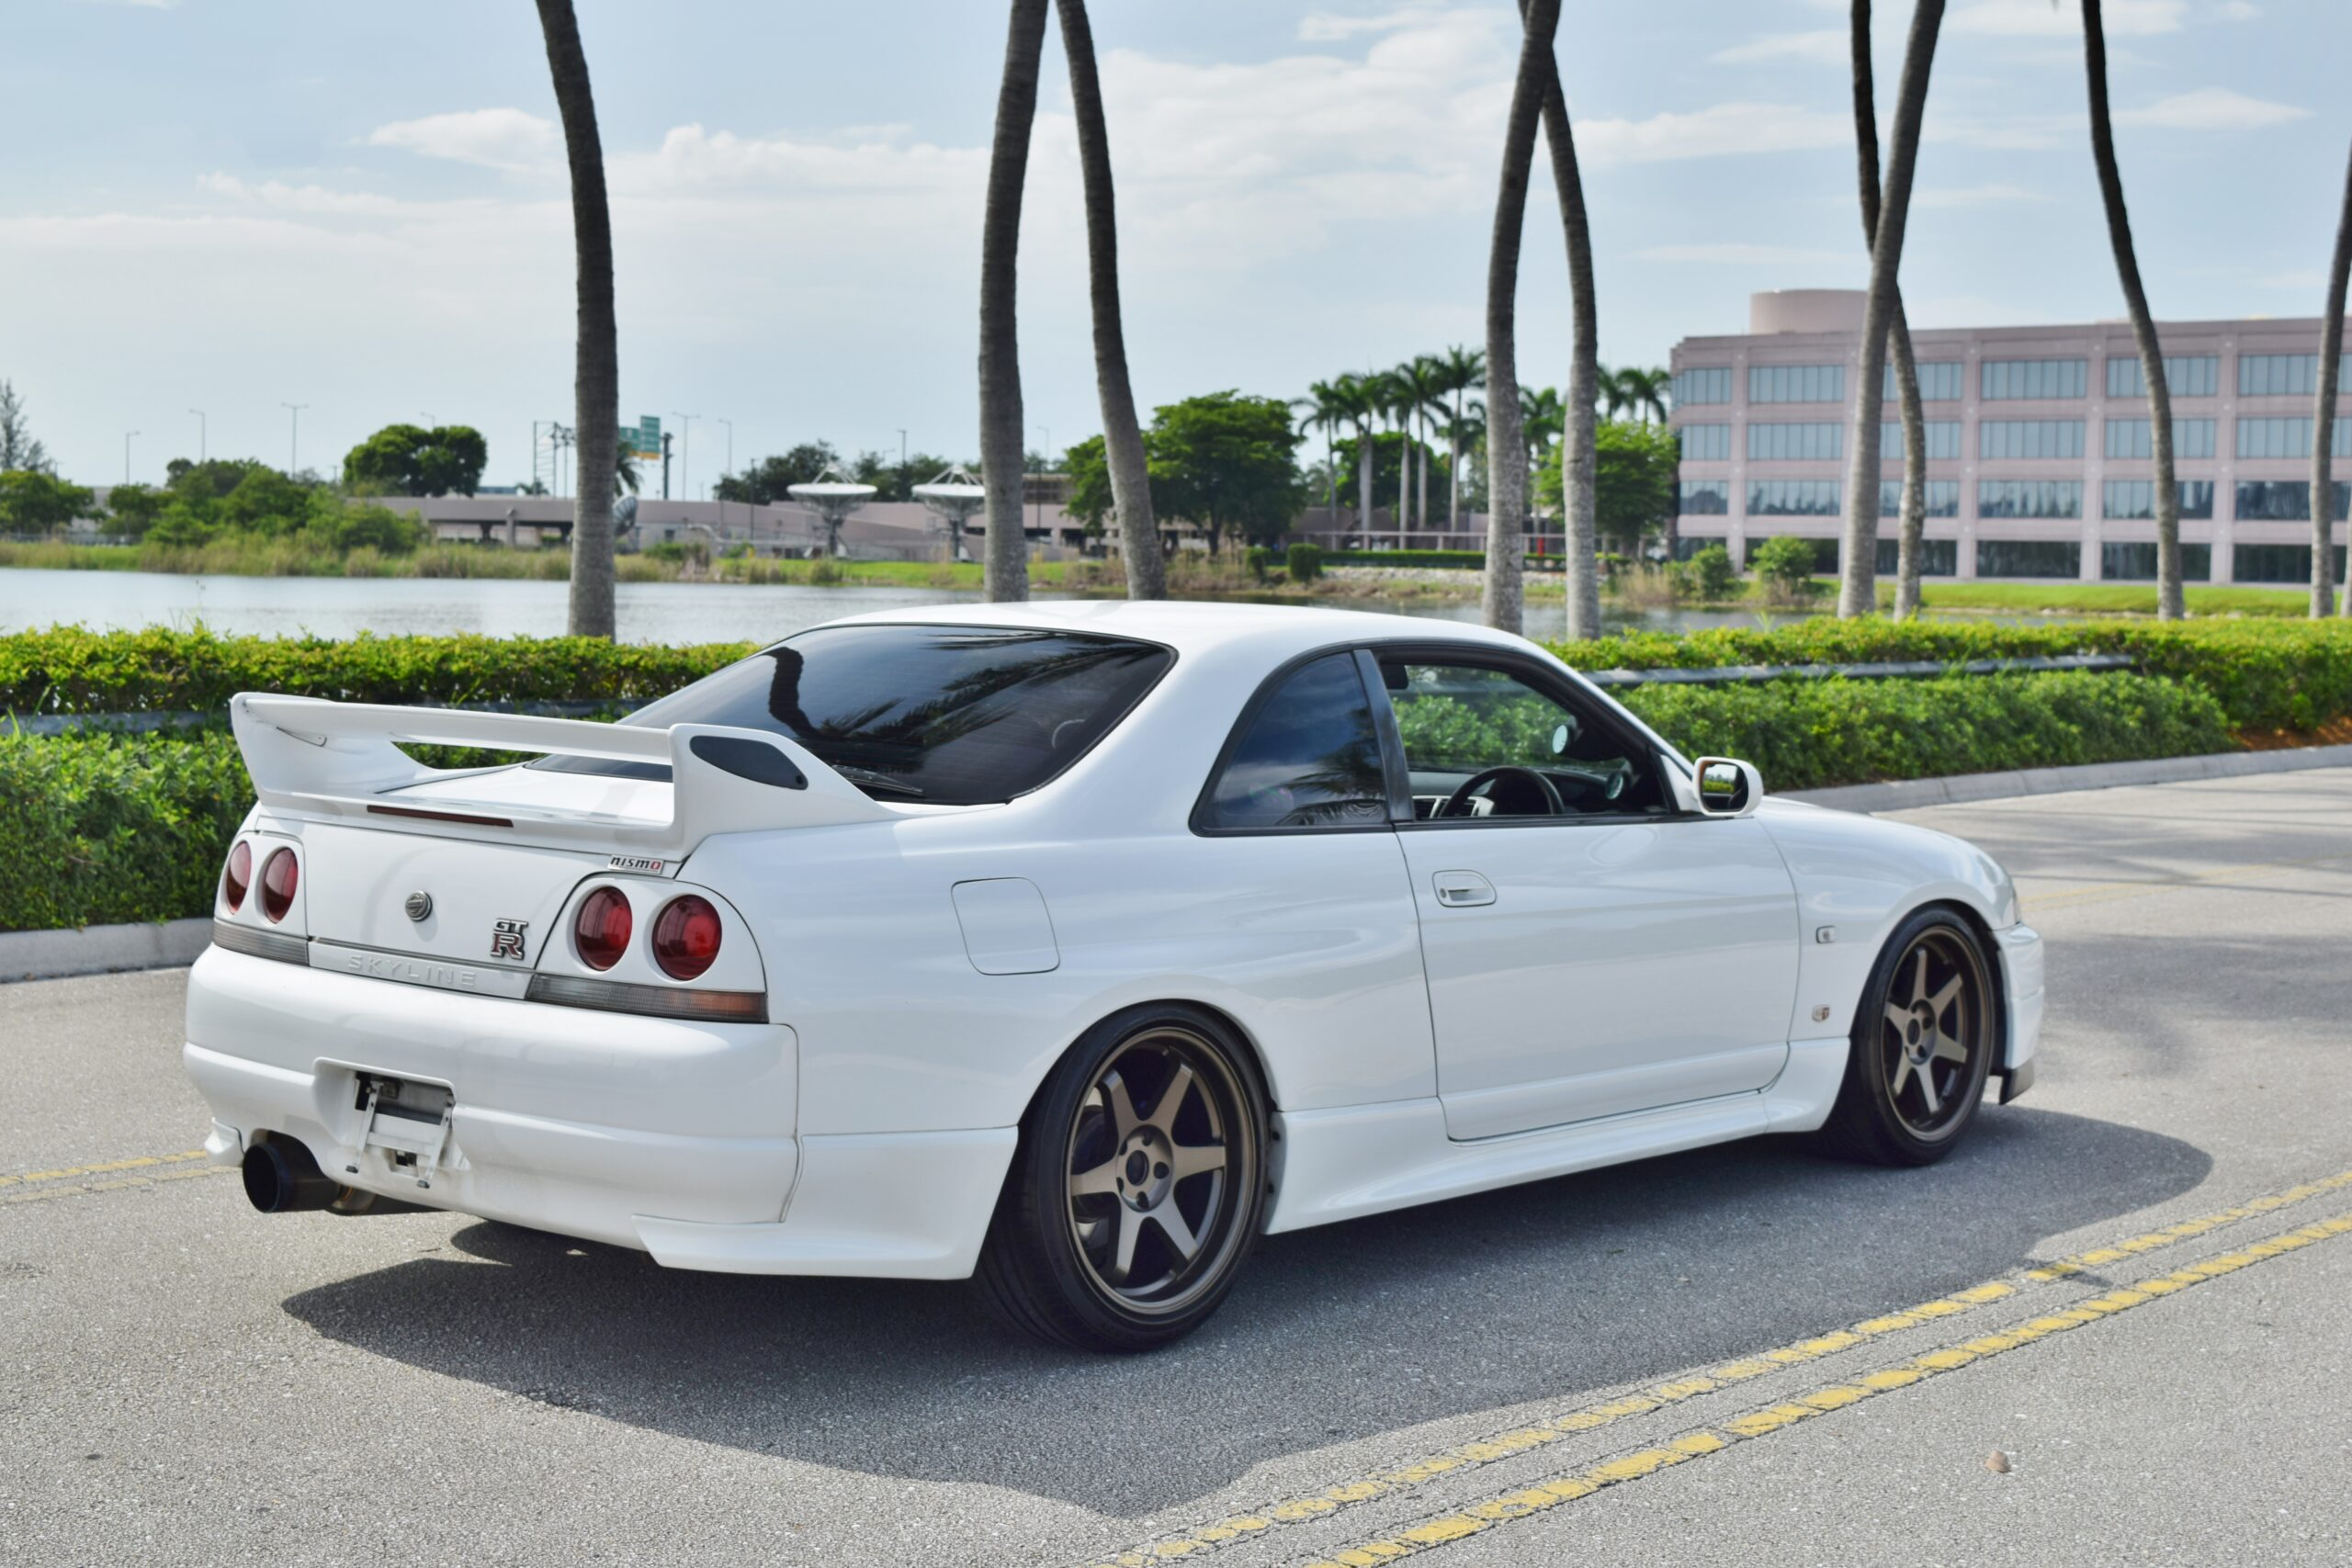 1995 Nissan GT-R R33 Skyline Only 66K Miles-Nicely Modified High Quality Parts -HKS Coilovers- Full Bolt On